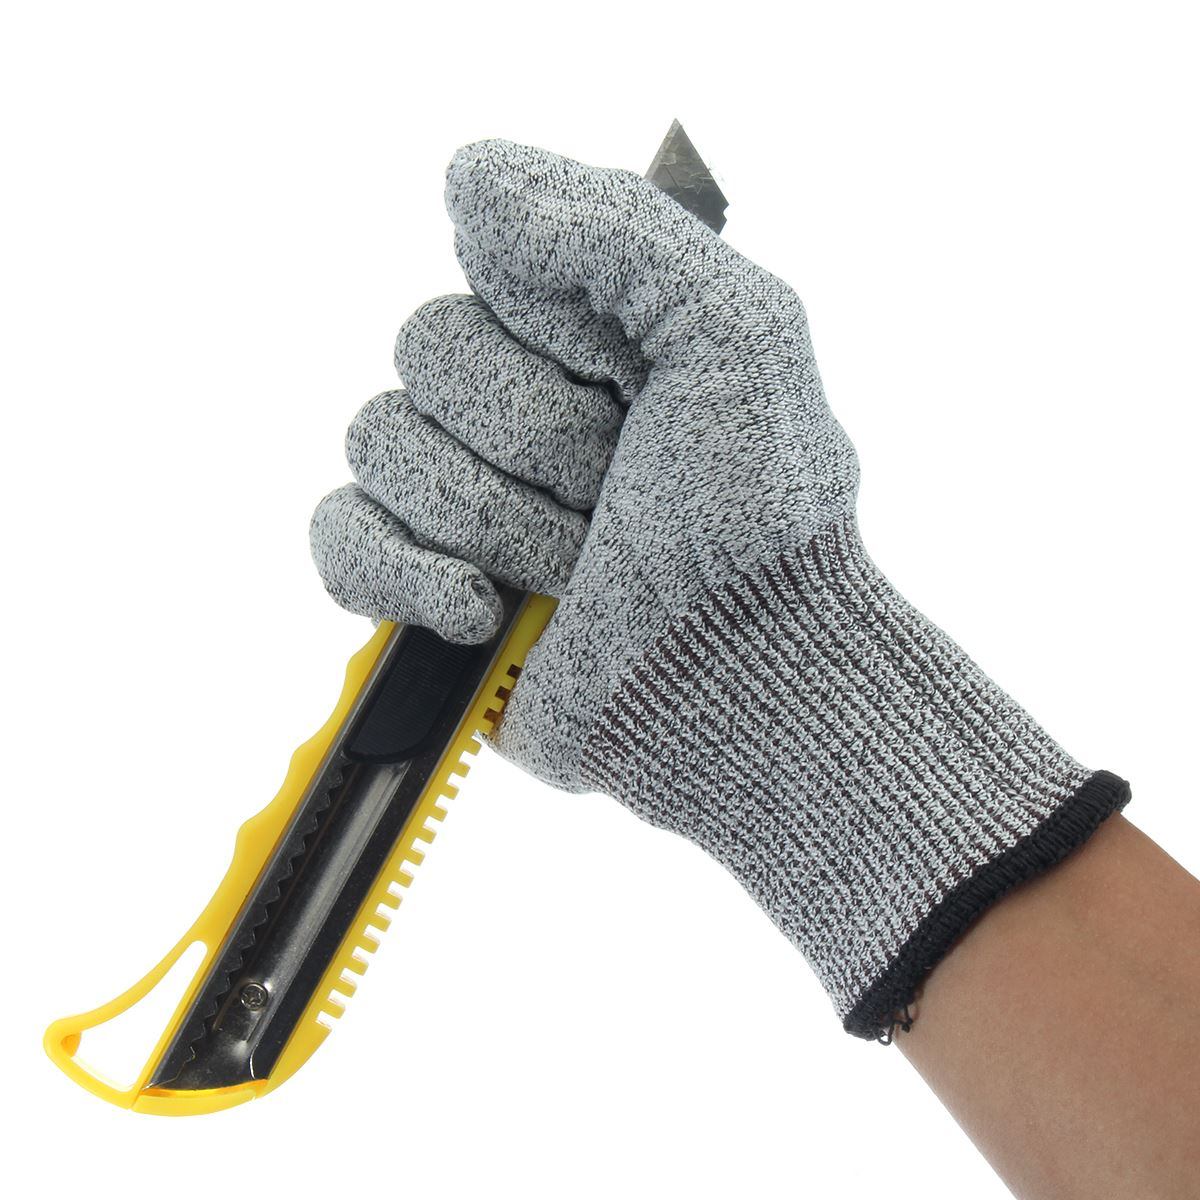 Safety Cut Proof Stab Resistant Stainless Steel Wire Metal Mesh Butcher Gloves Cut-Resistant Safety Gloves 1pcs safety gloves cut proof stab resistant stainless steel wire metal mesh butcher anti knife